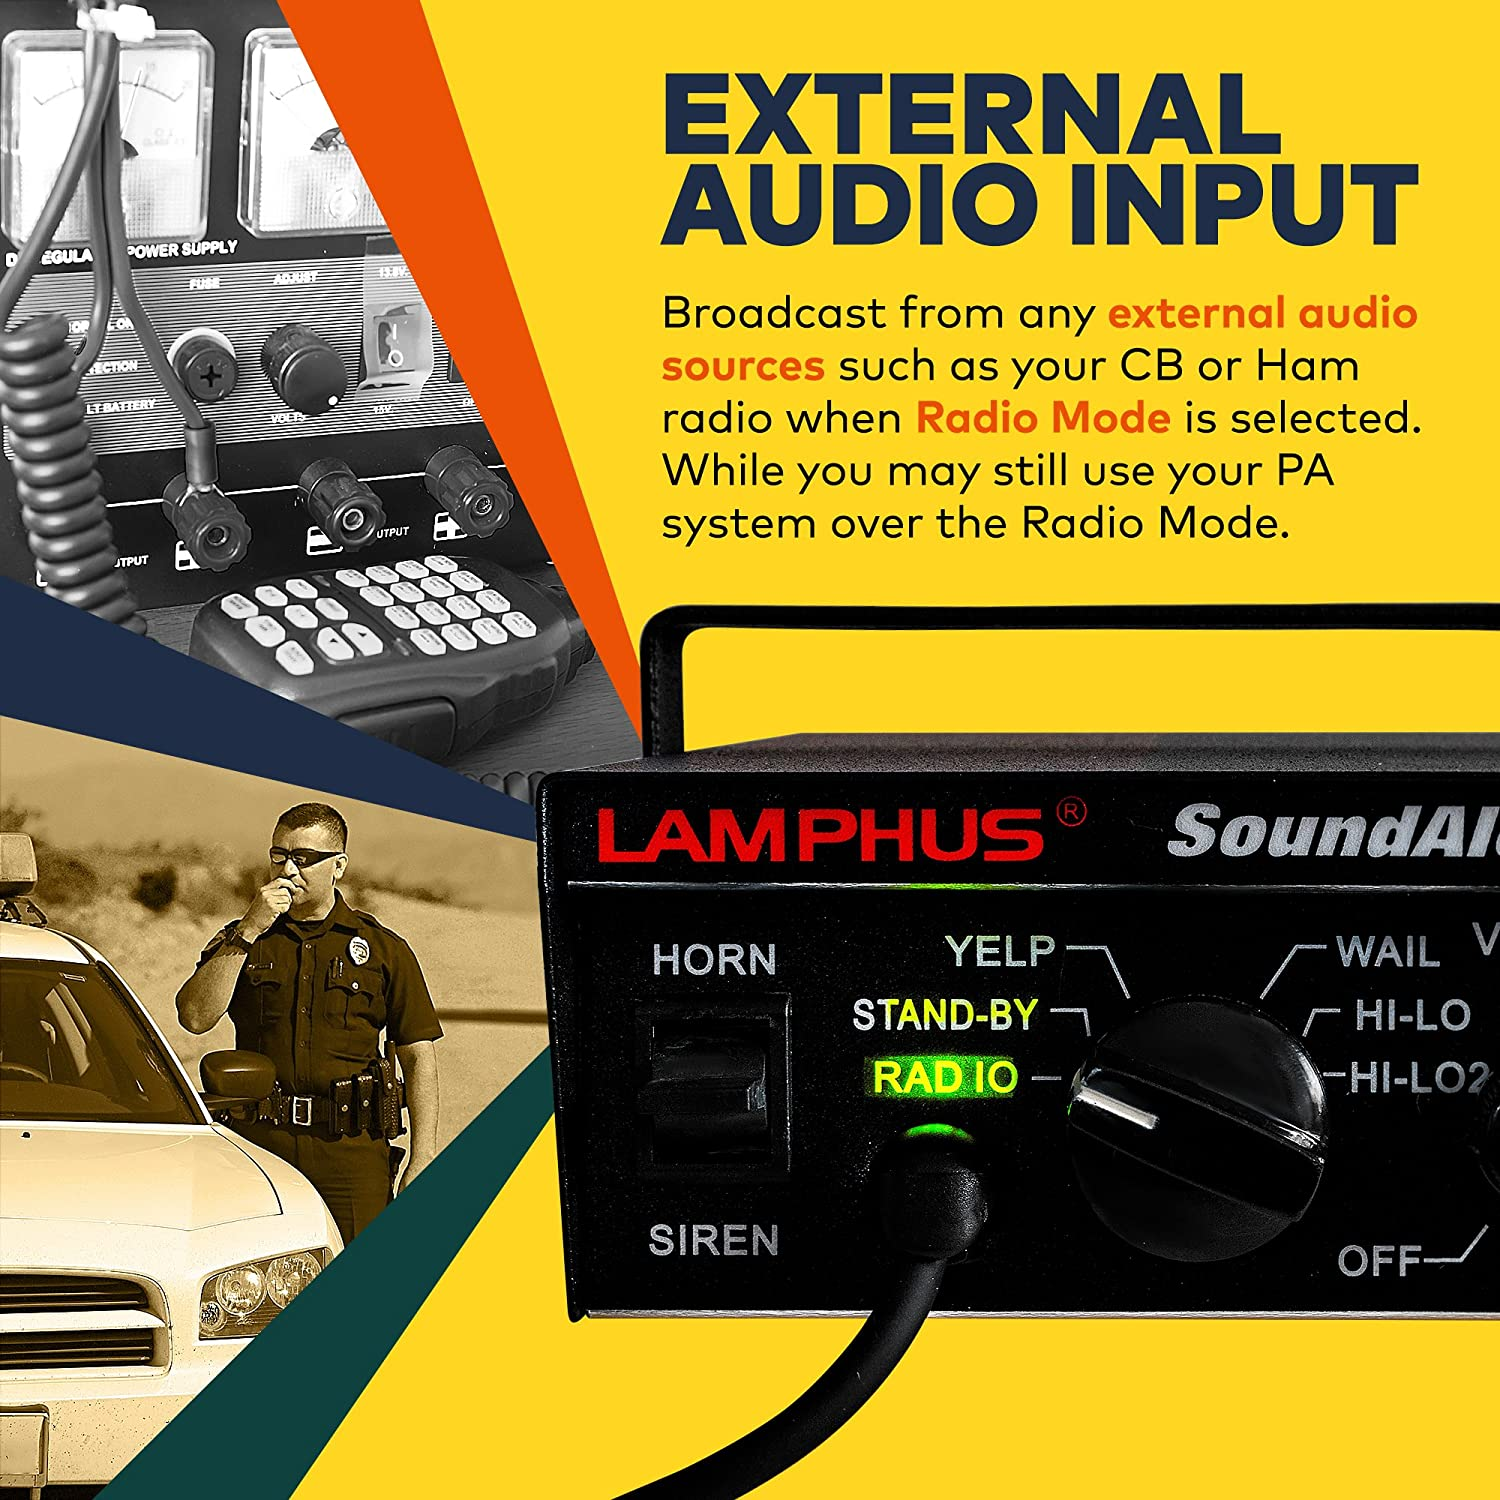 Lamphus Soundalert Siren Speaker Pa System 100w 6 Wiring Diagram Horn Modes Heavy Duty 120 130db Microphone Hands Free Dual 20a Switches Emergency